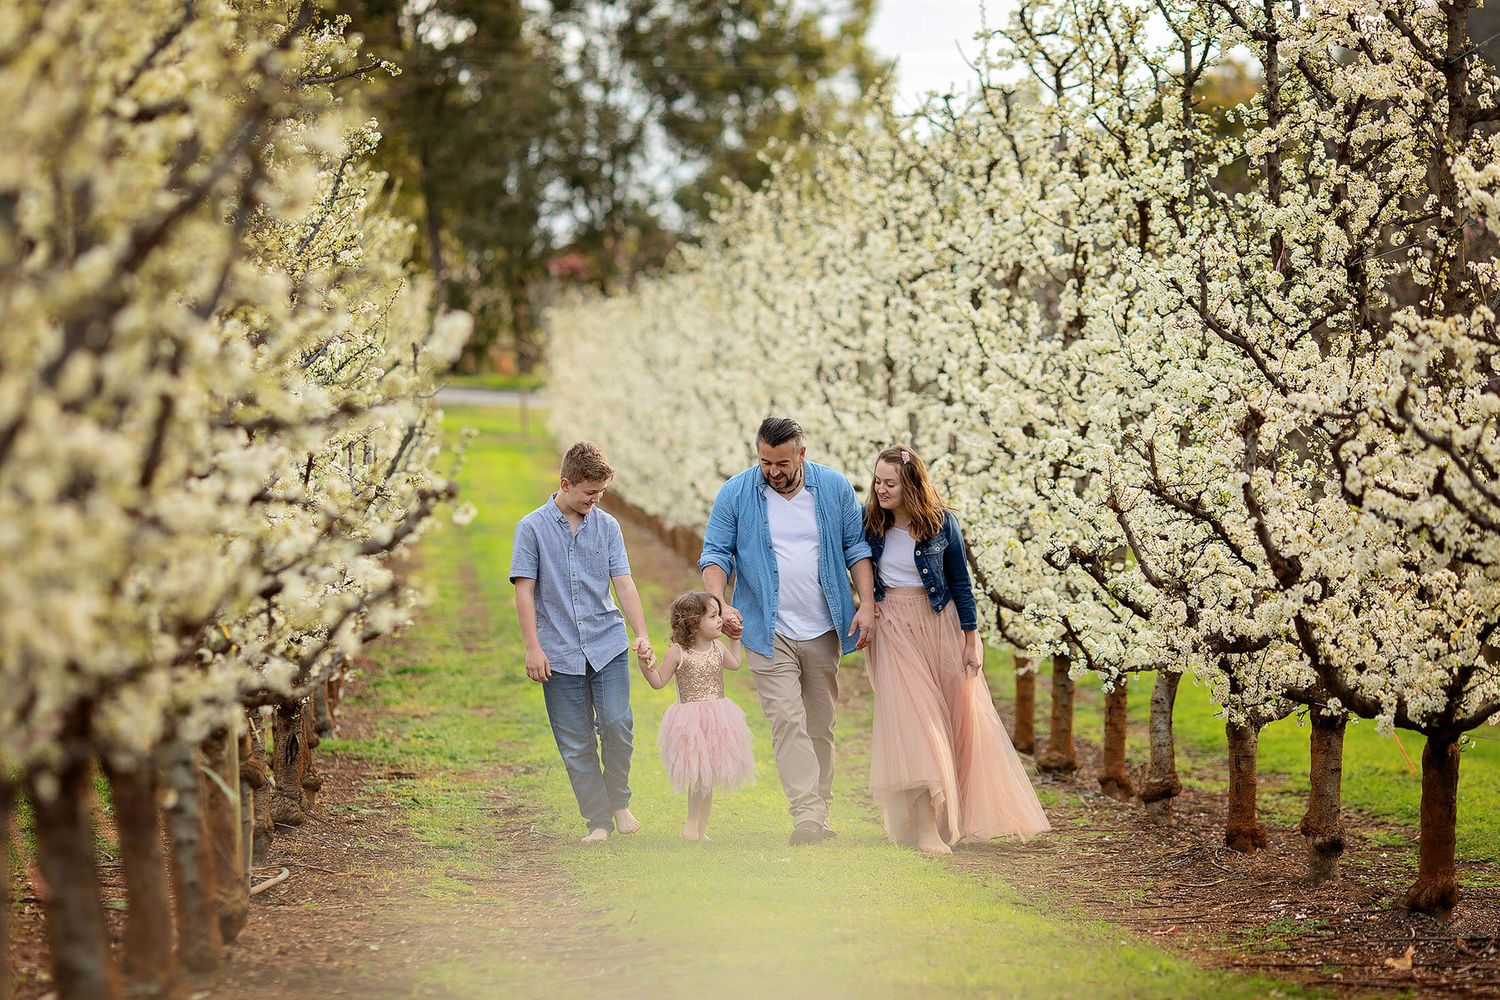 A Perth family walking amongst the white blossoms for a photo shoot